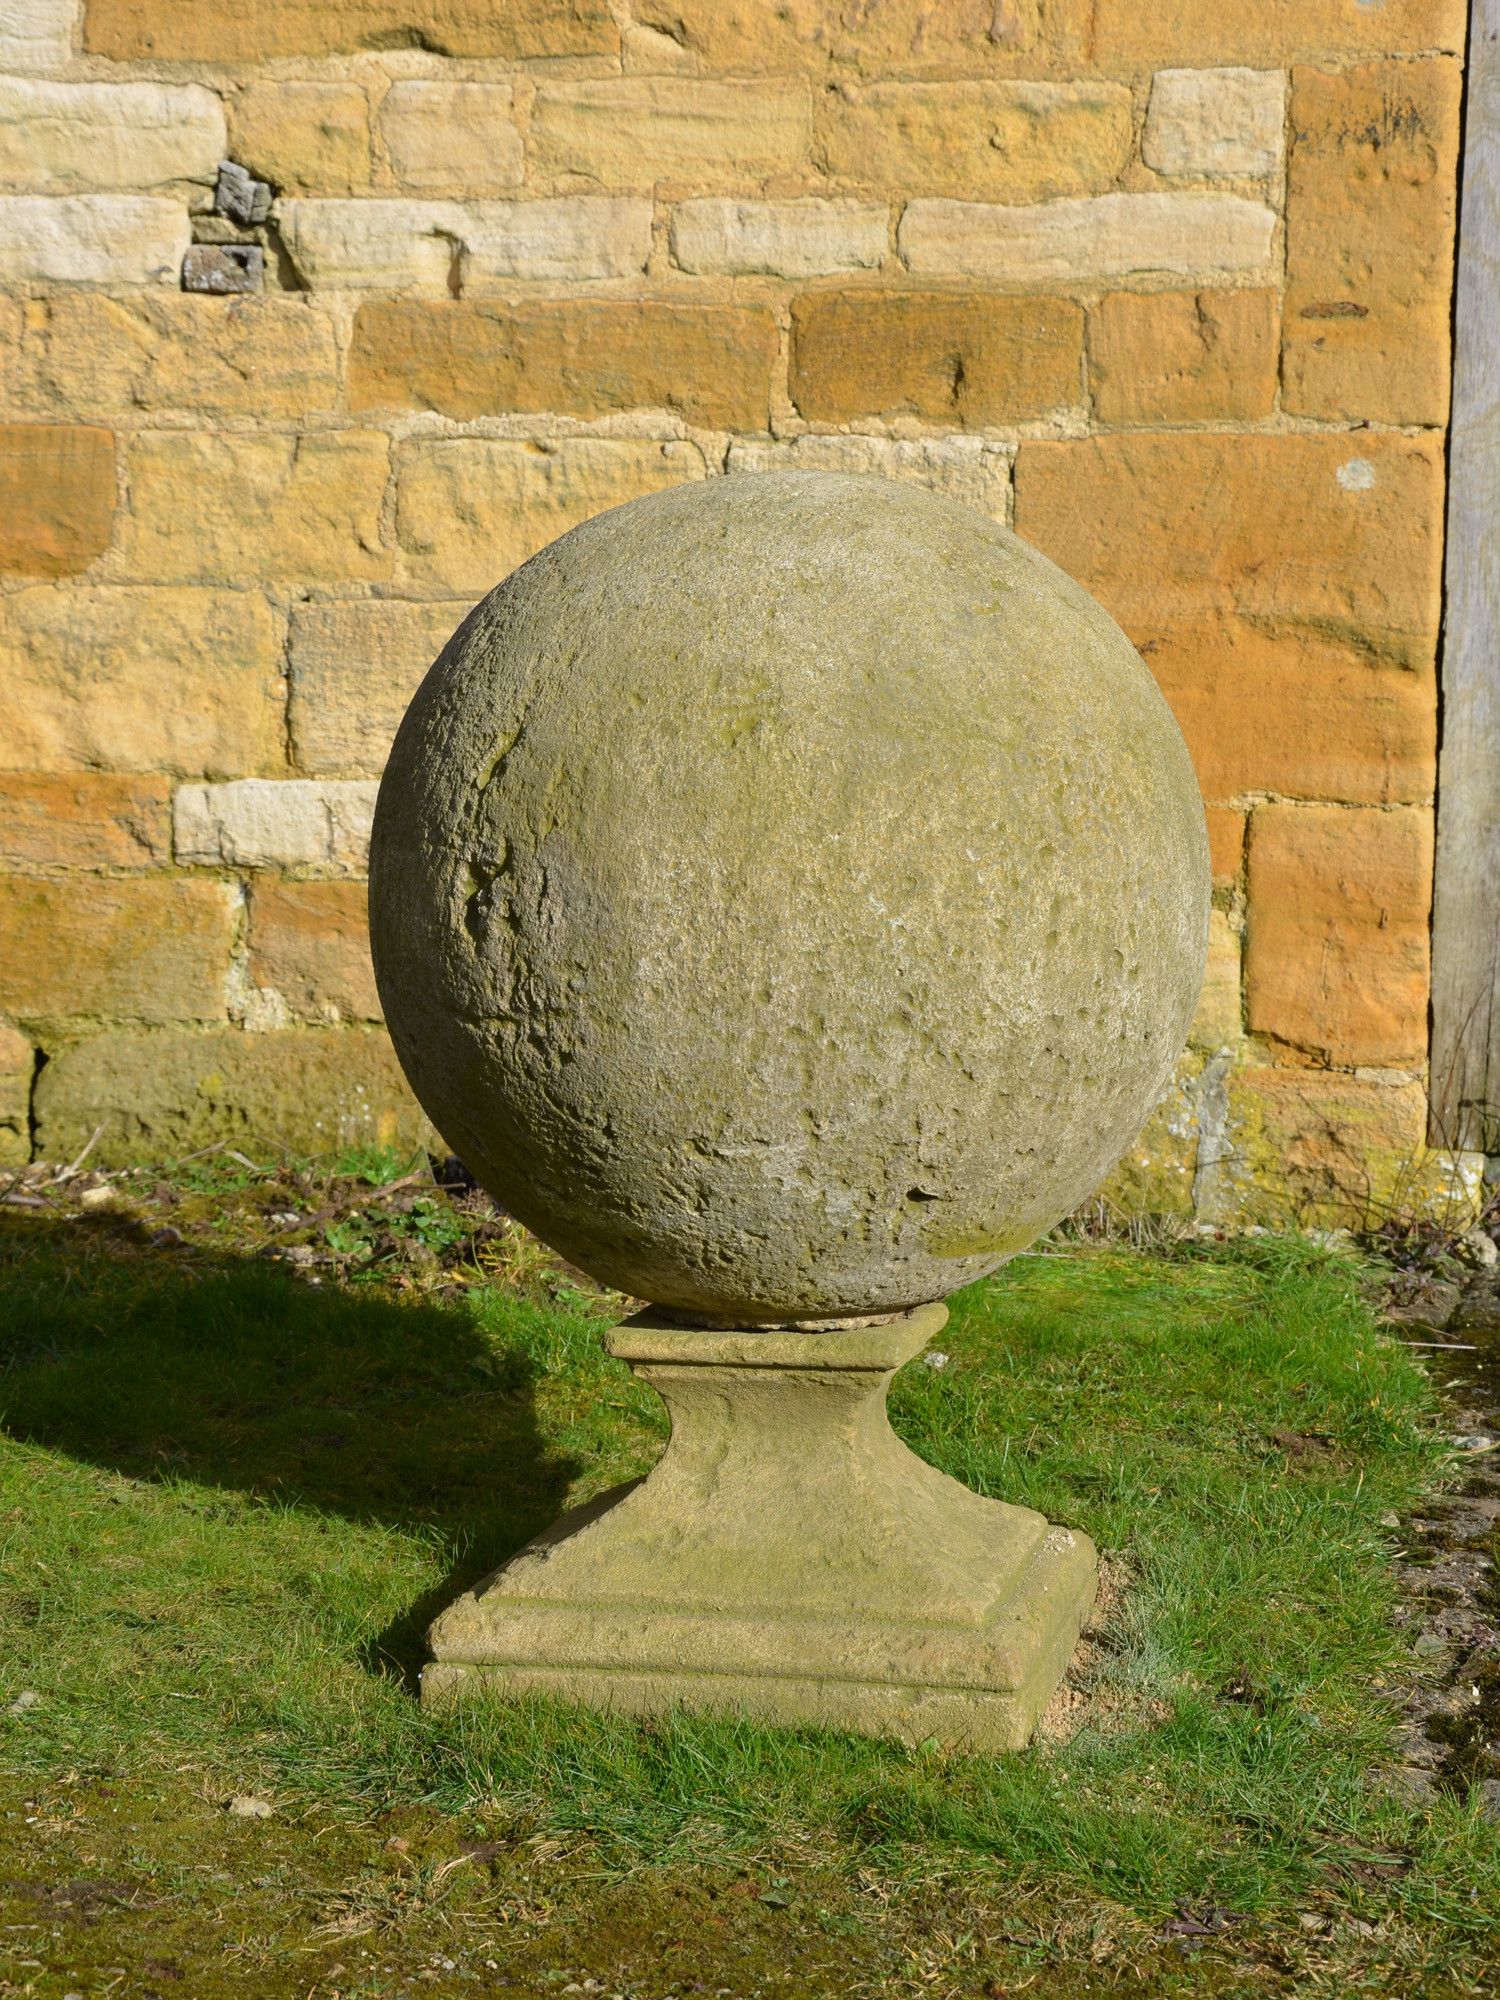 The Large Sphere Finials